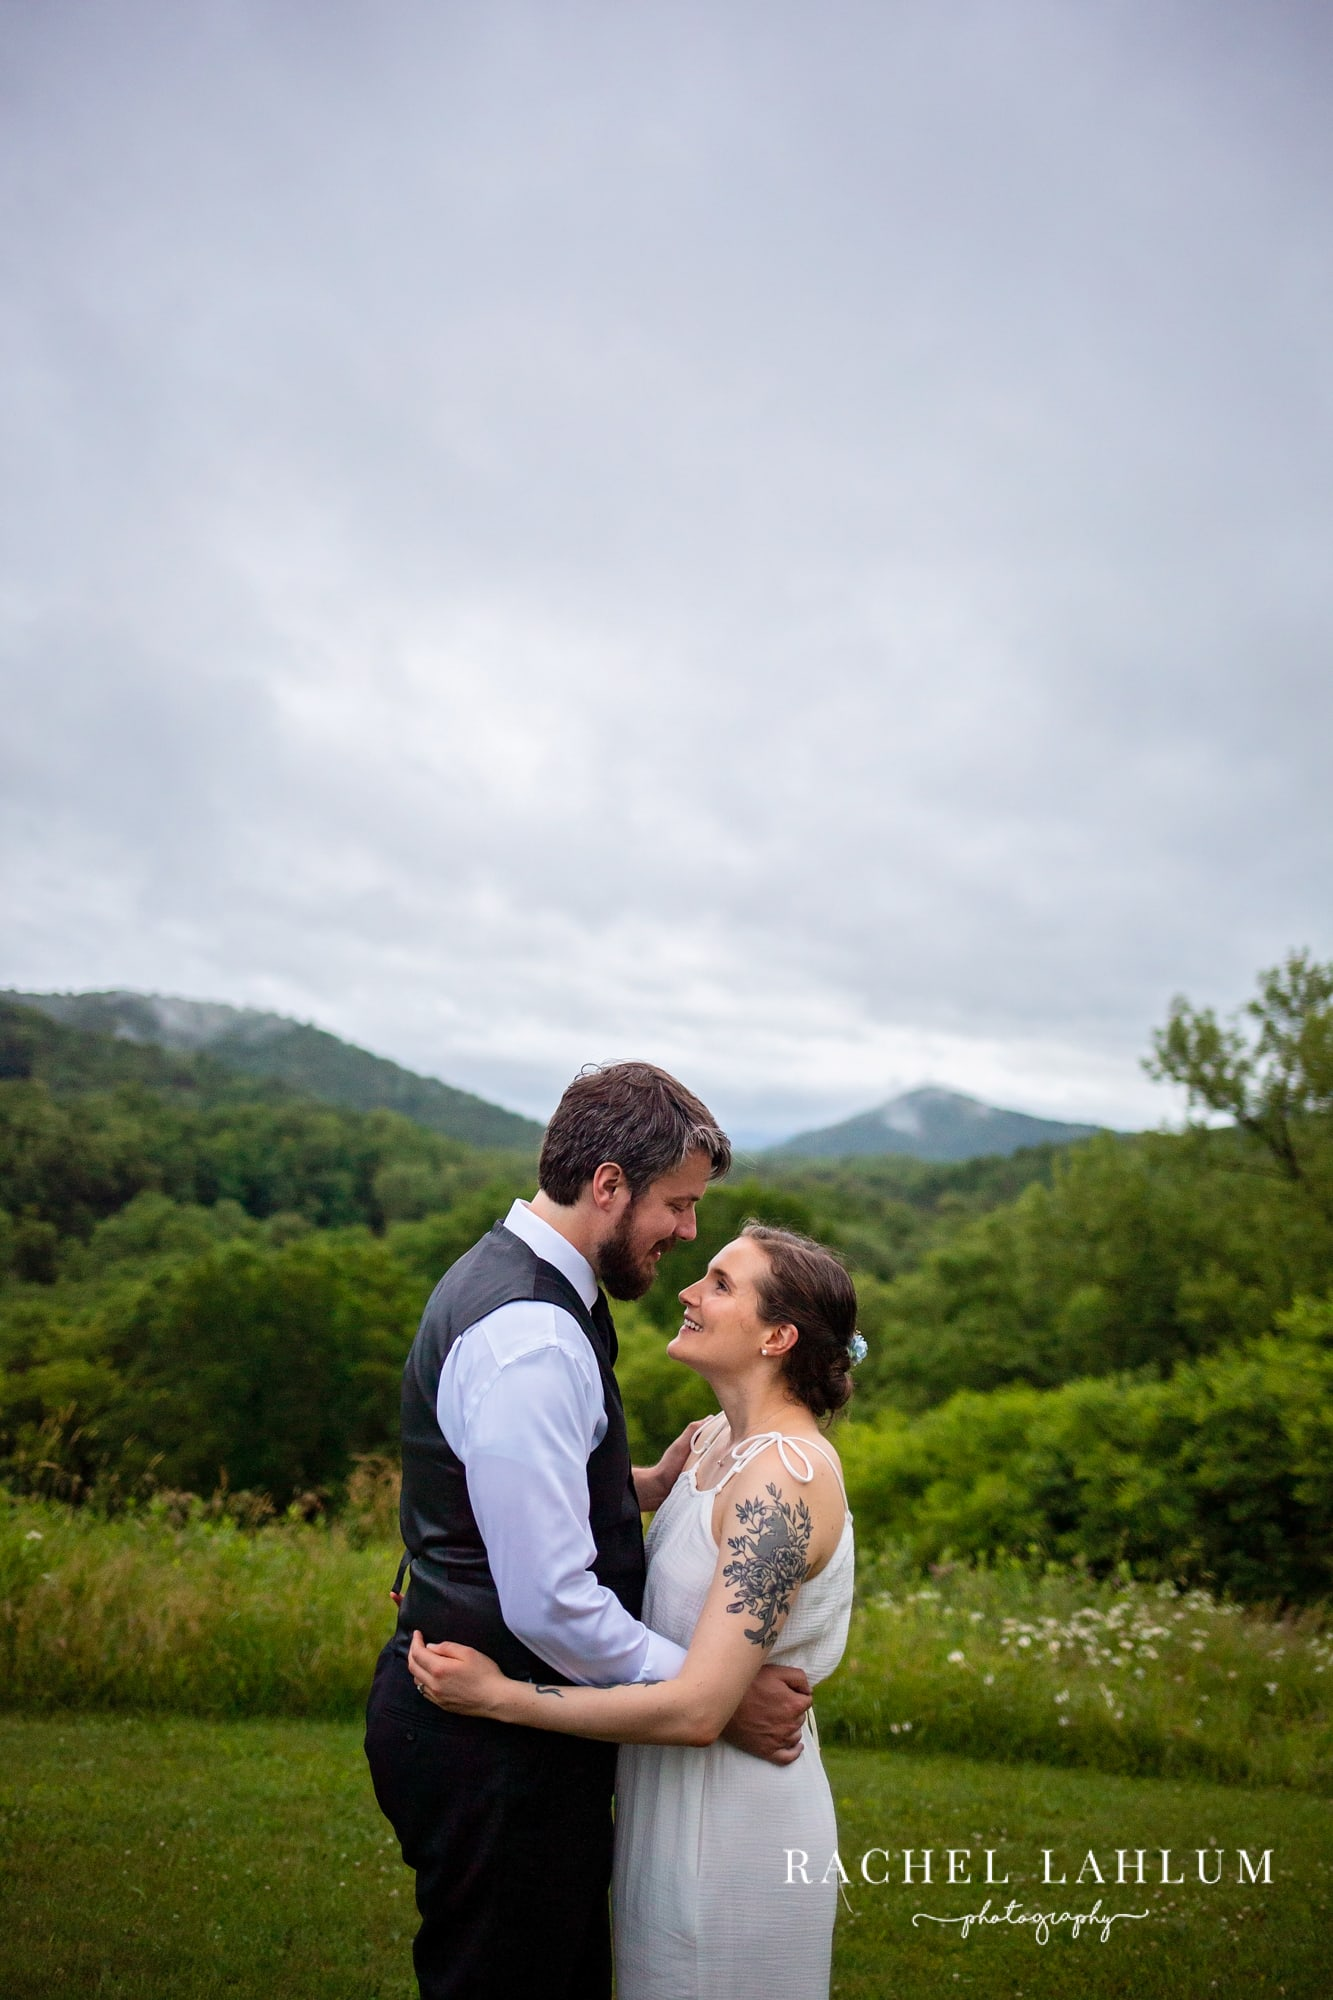 Bride and groom hold each other overlooking the hills of Winona, Minnesota.